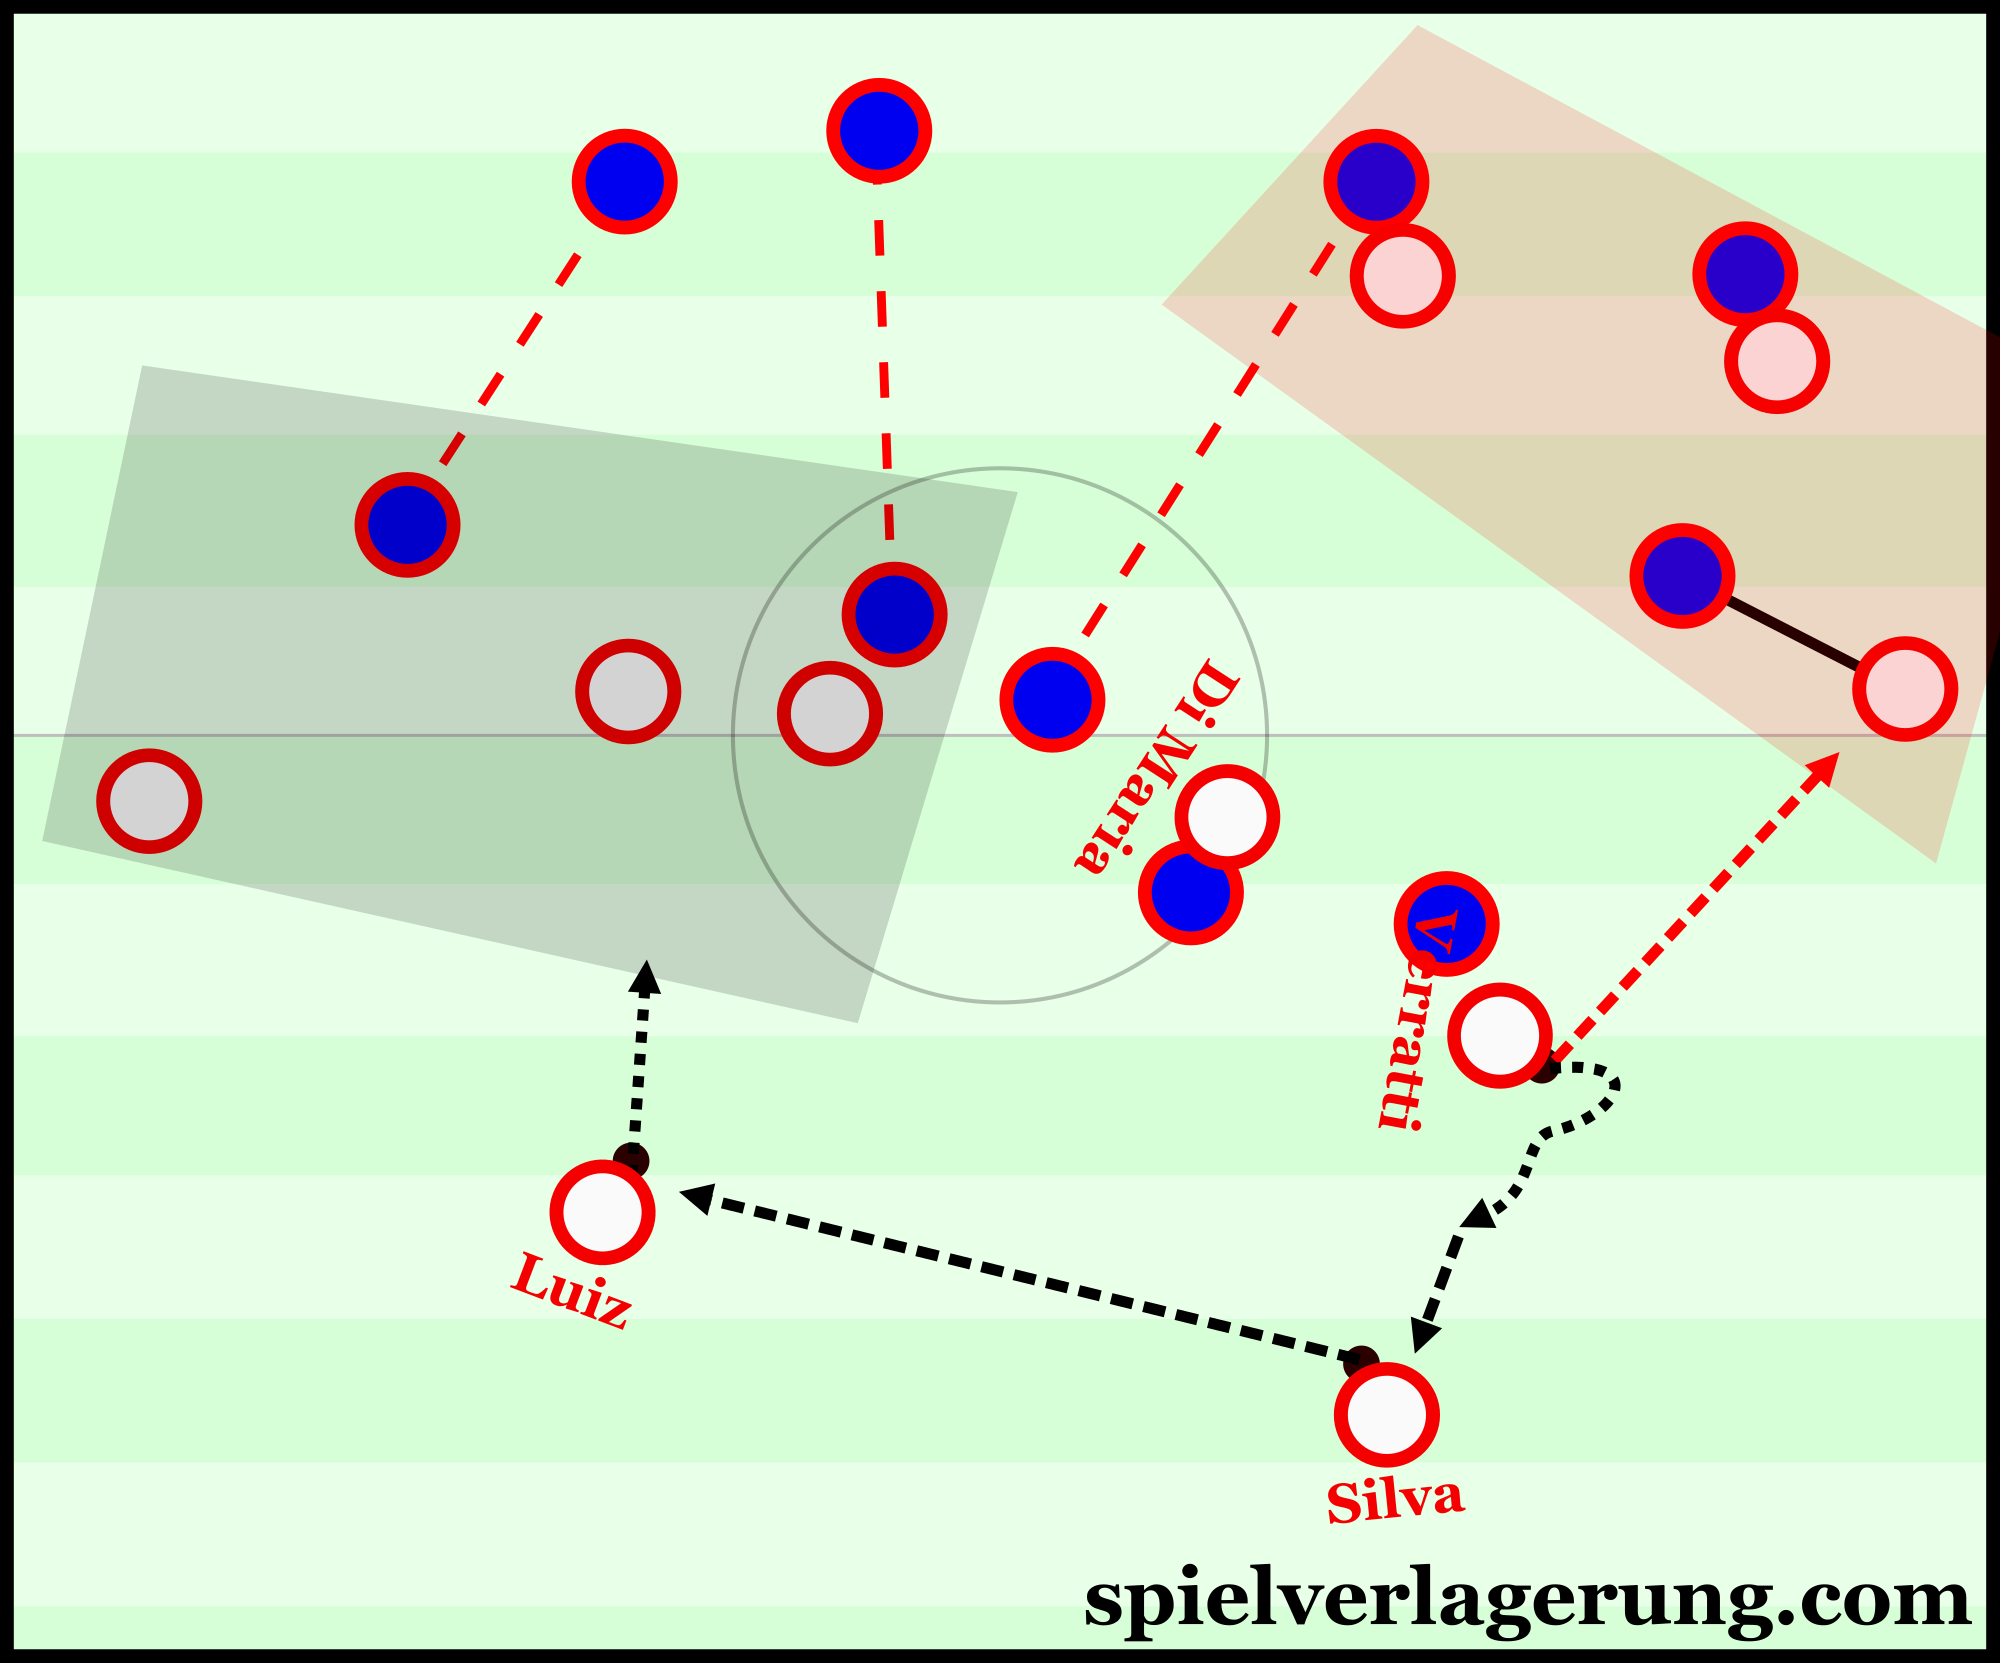 David Luiz is given space to drive forward with the ball after Verratti attracts pressure to the opposite half-space.